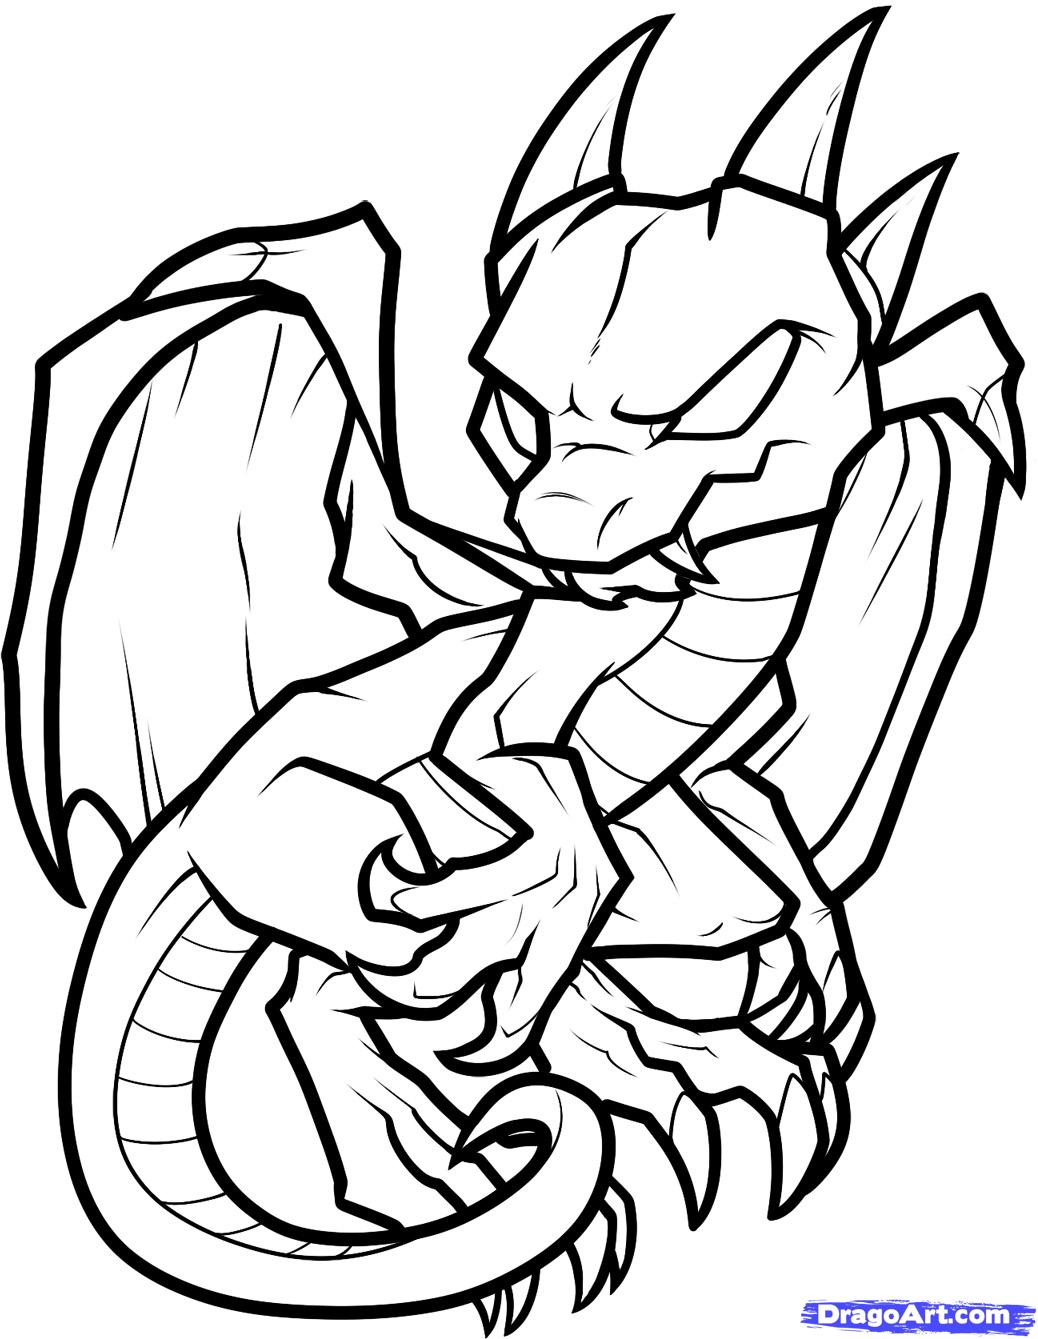 1038x1339 Baby Dragon Drawings Image Gallery For Easy Ice Dragon Drawings